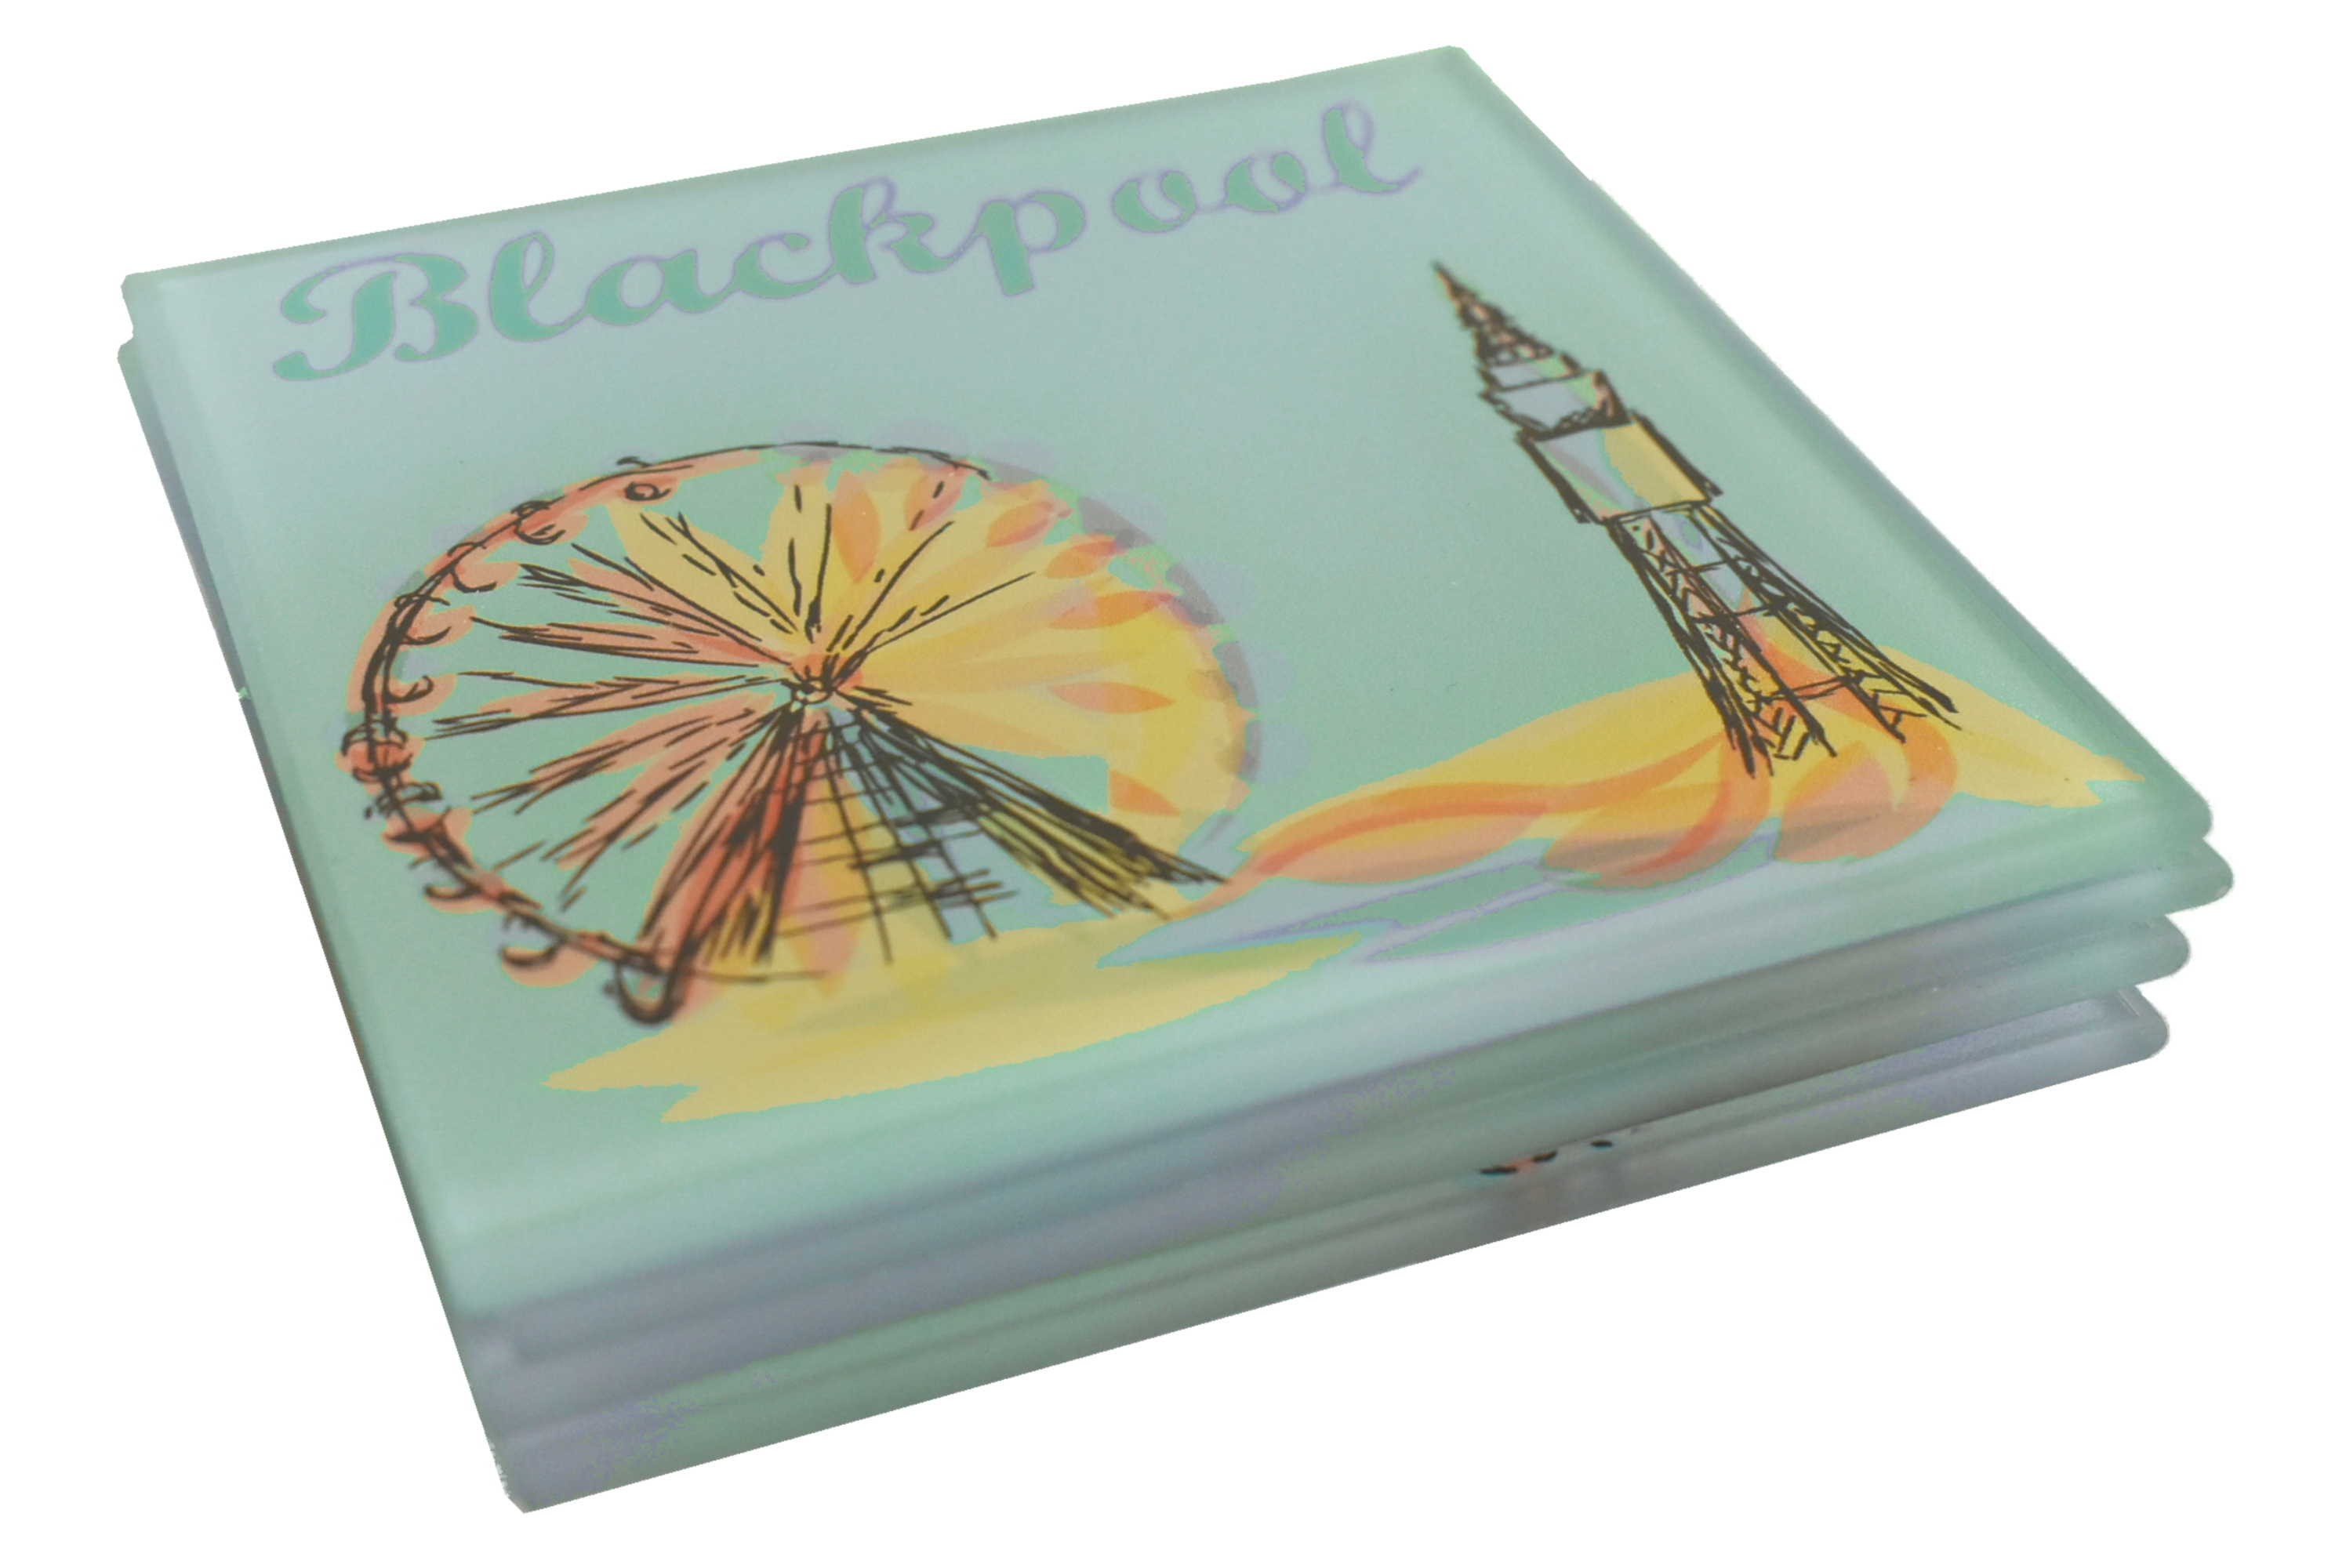 Blackpool Glass Coasters Abstract Design Set Of 4